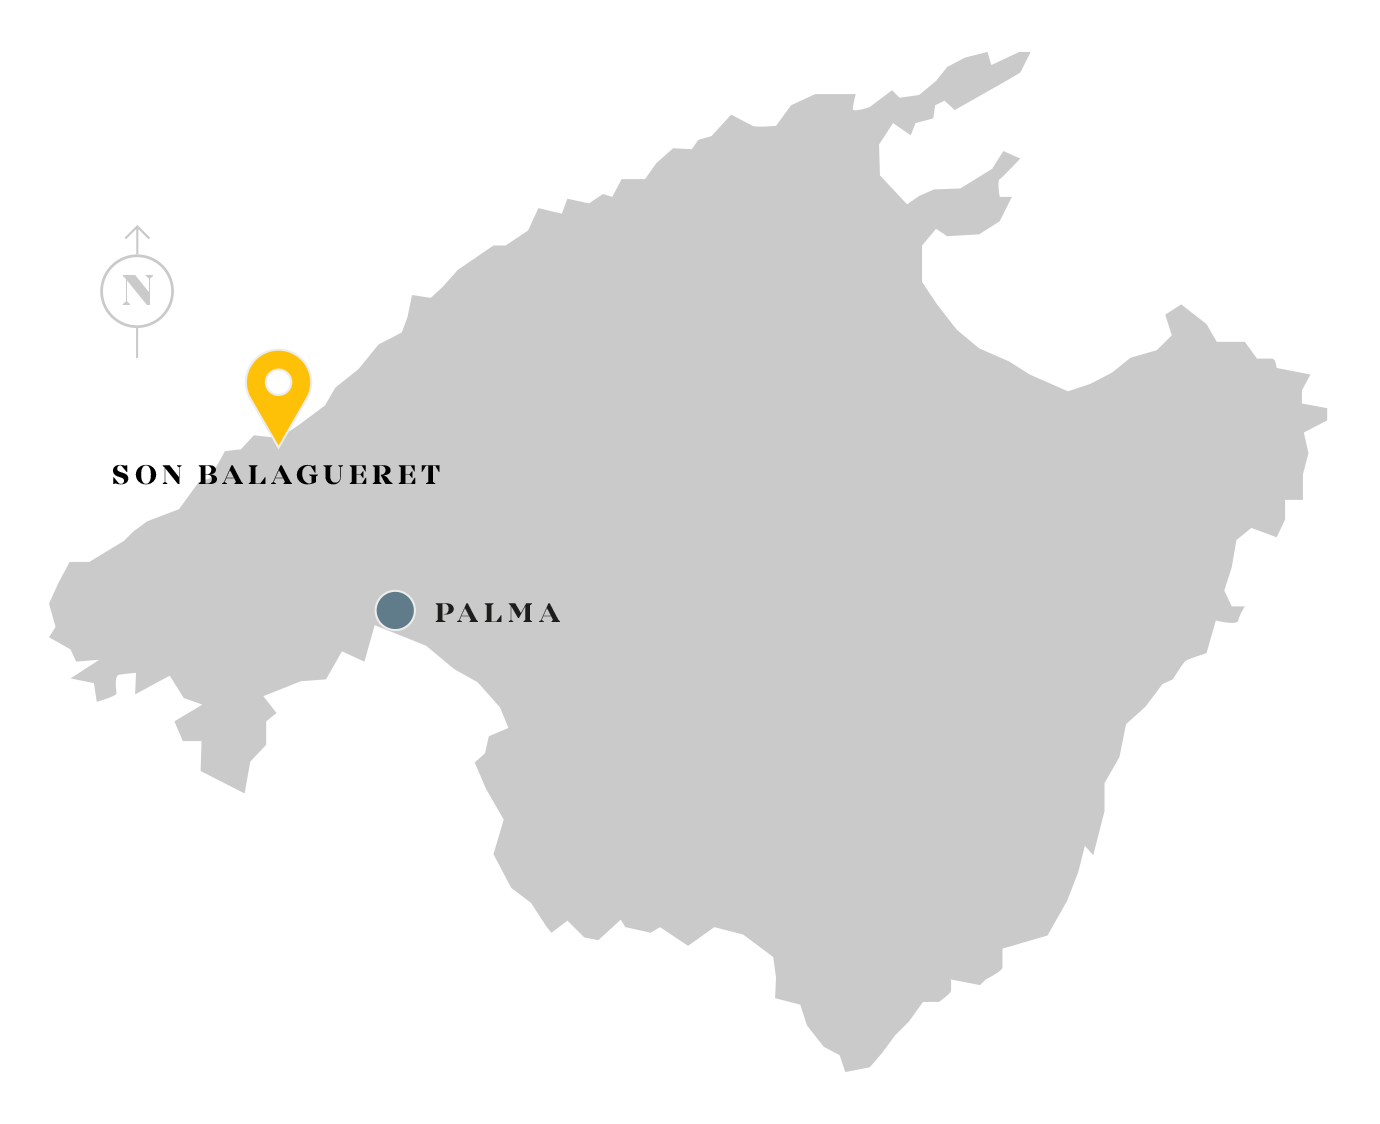 Son Balagueret location map